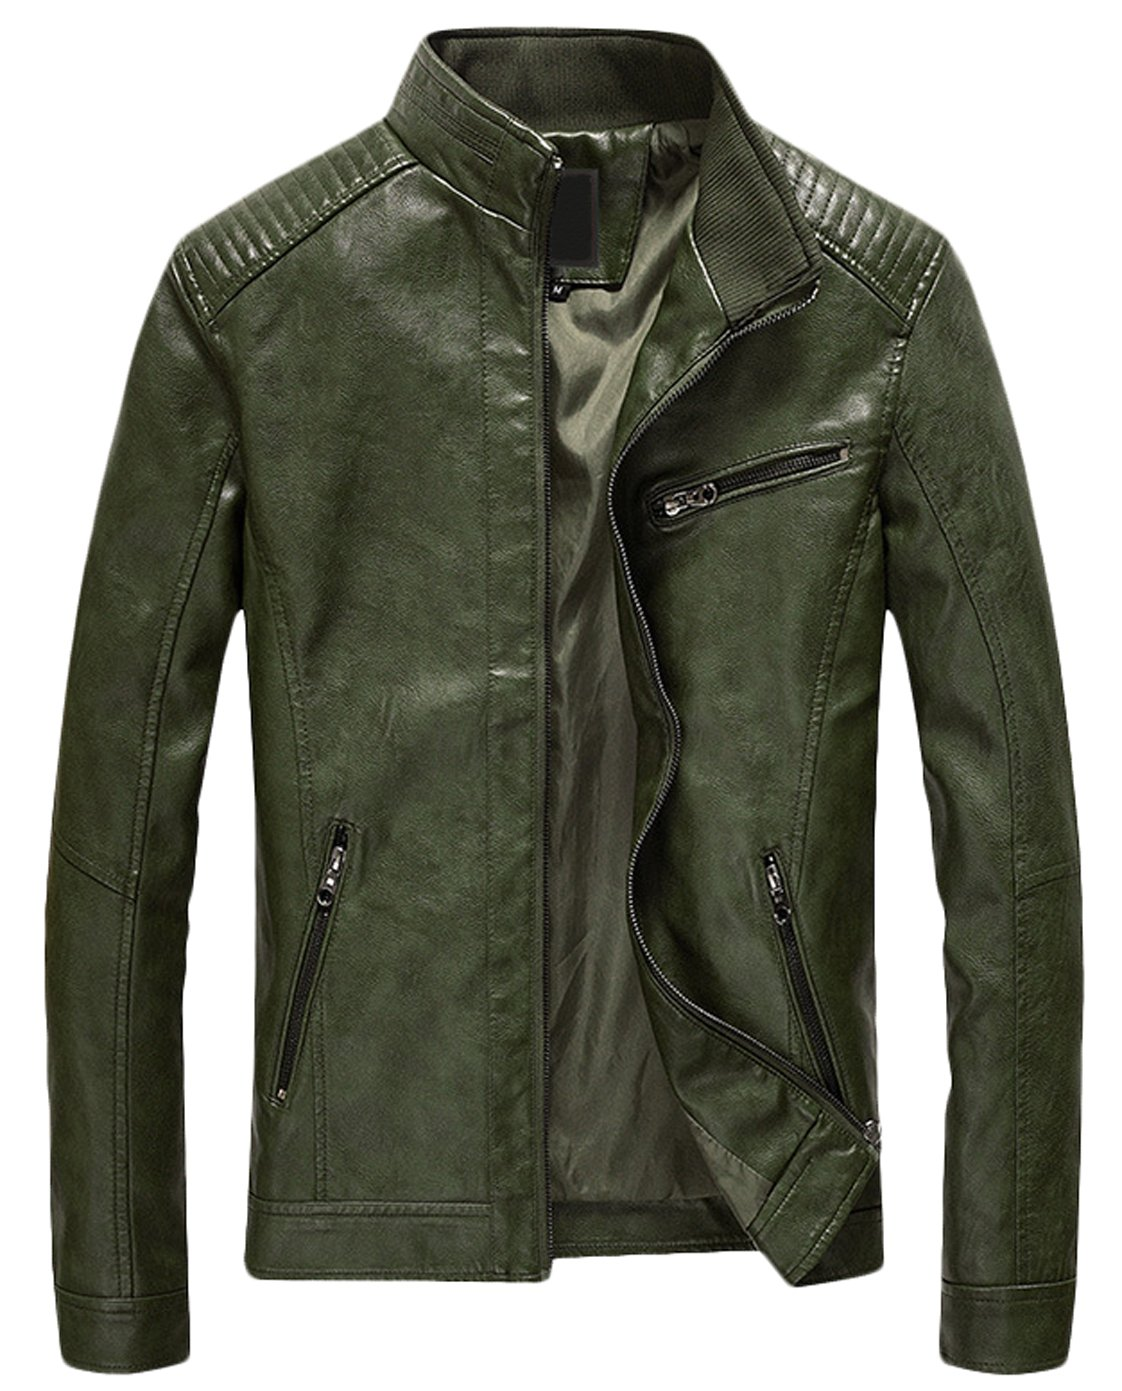 Youhan Men's Casual Zip up Slim Bomber Faux Leather Jacket (Medium, Army Green) by Youhan